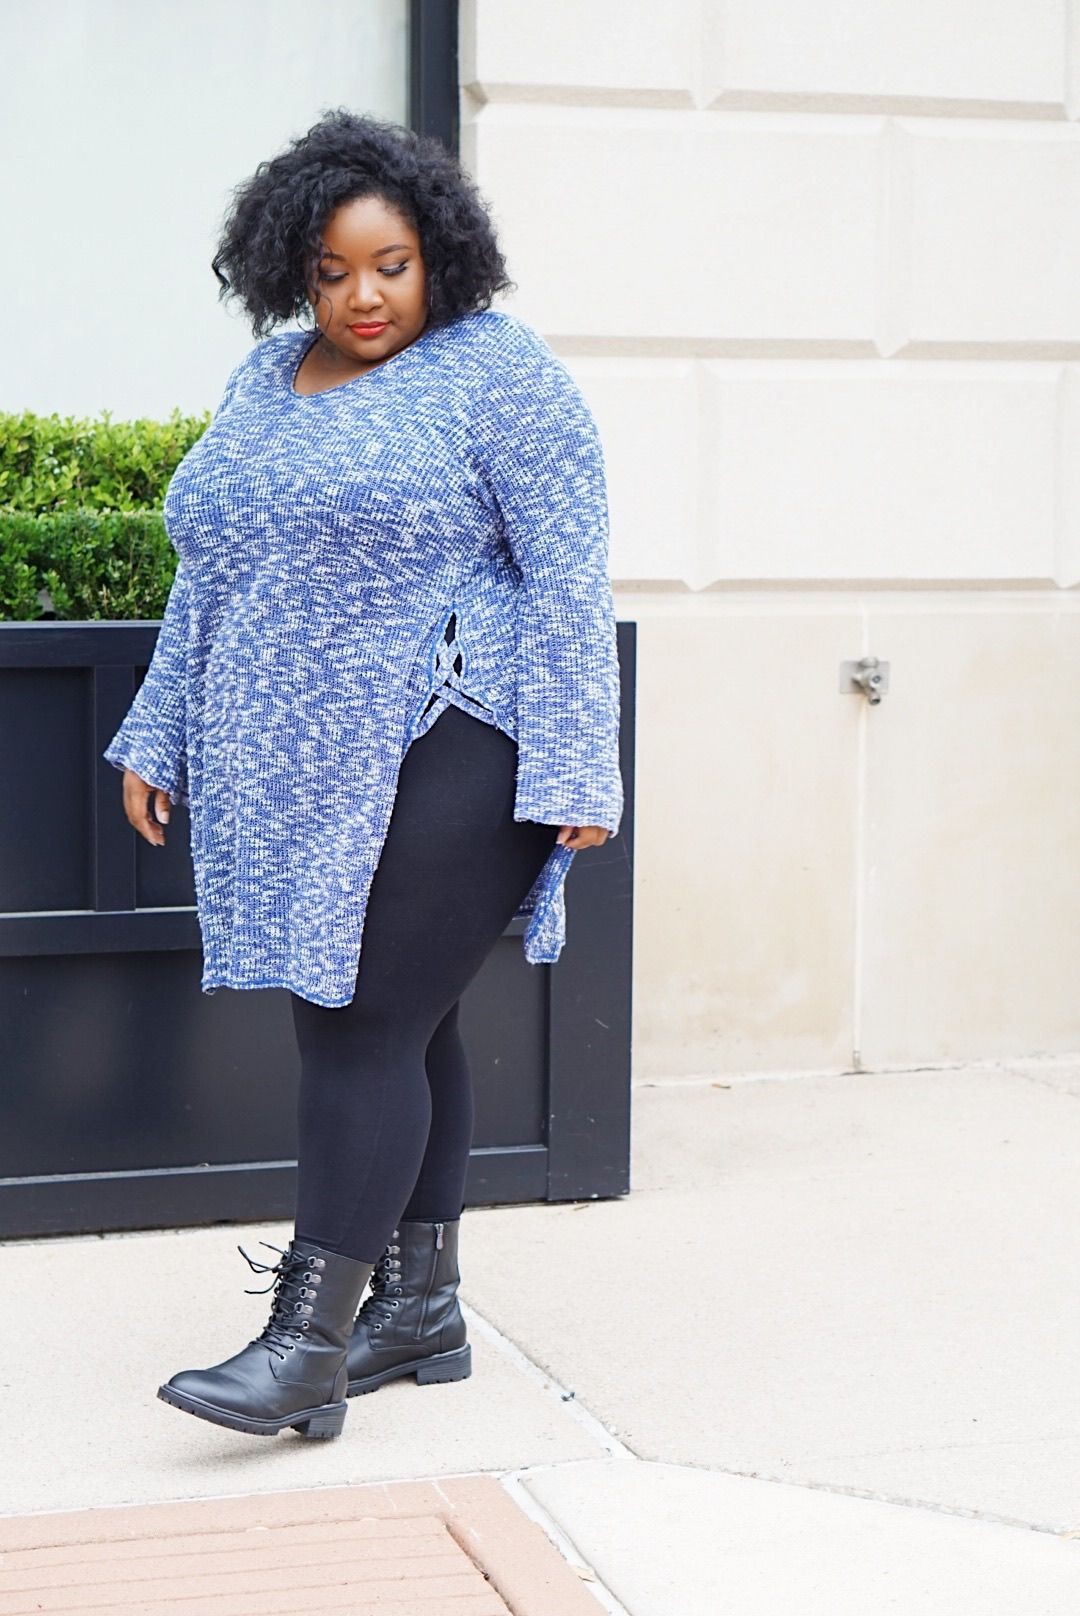 Blue outfit ideas with leggings, tights, jeans